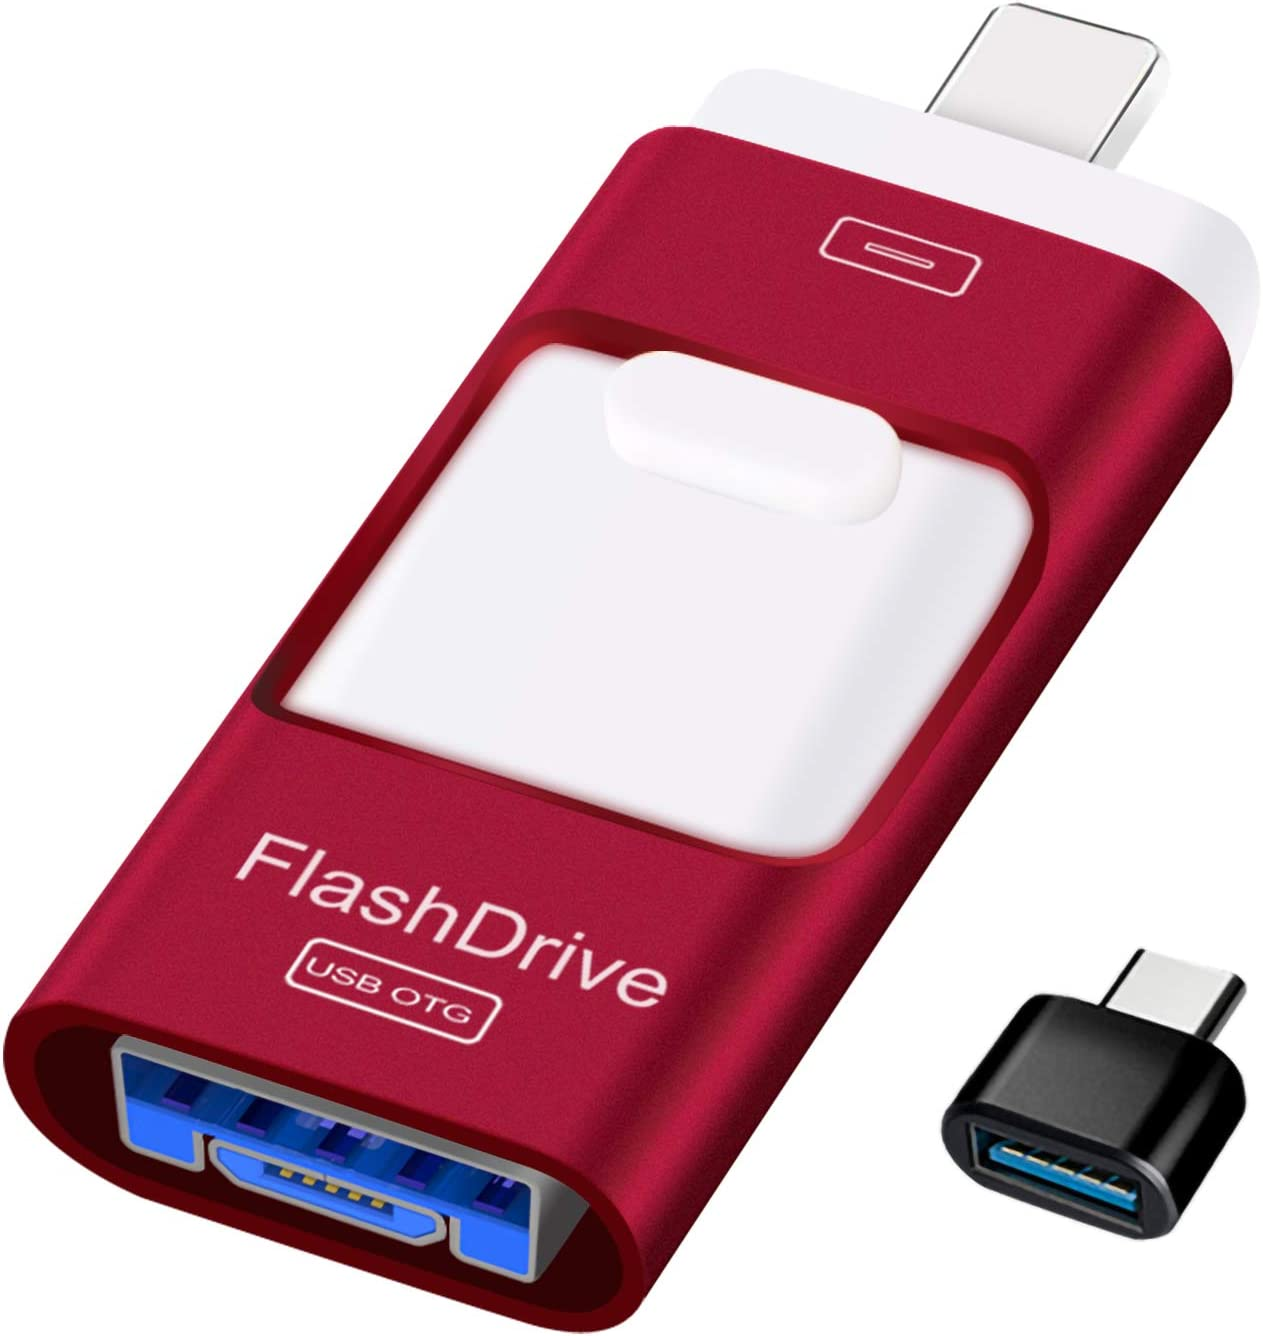 Sunany USB Flash Drive 256GB, Photo Stick Memory External Data Storage Thumb Drive Compatible with iPhone, iPad, Android, PC and More Devices (Red)